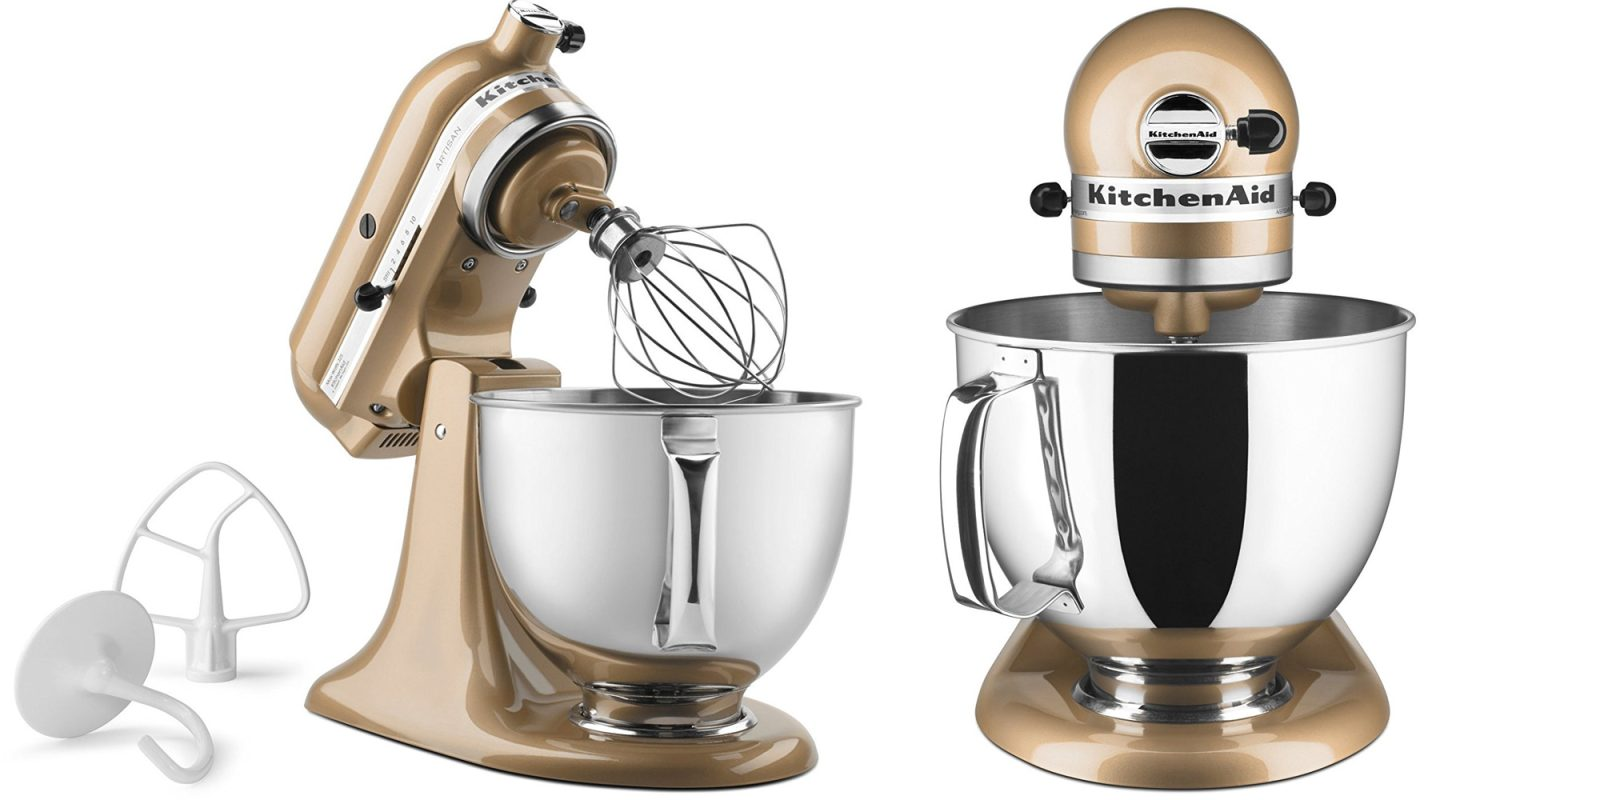 Mix It Up This Thanksgiving W A 5 Qt Kitchenaid Mixer For 200 Reg 280